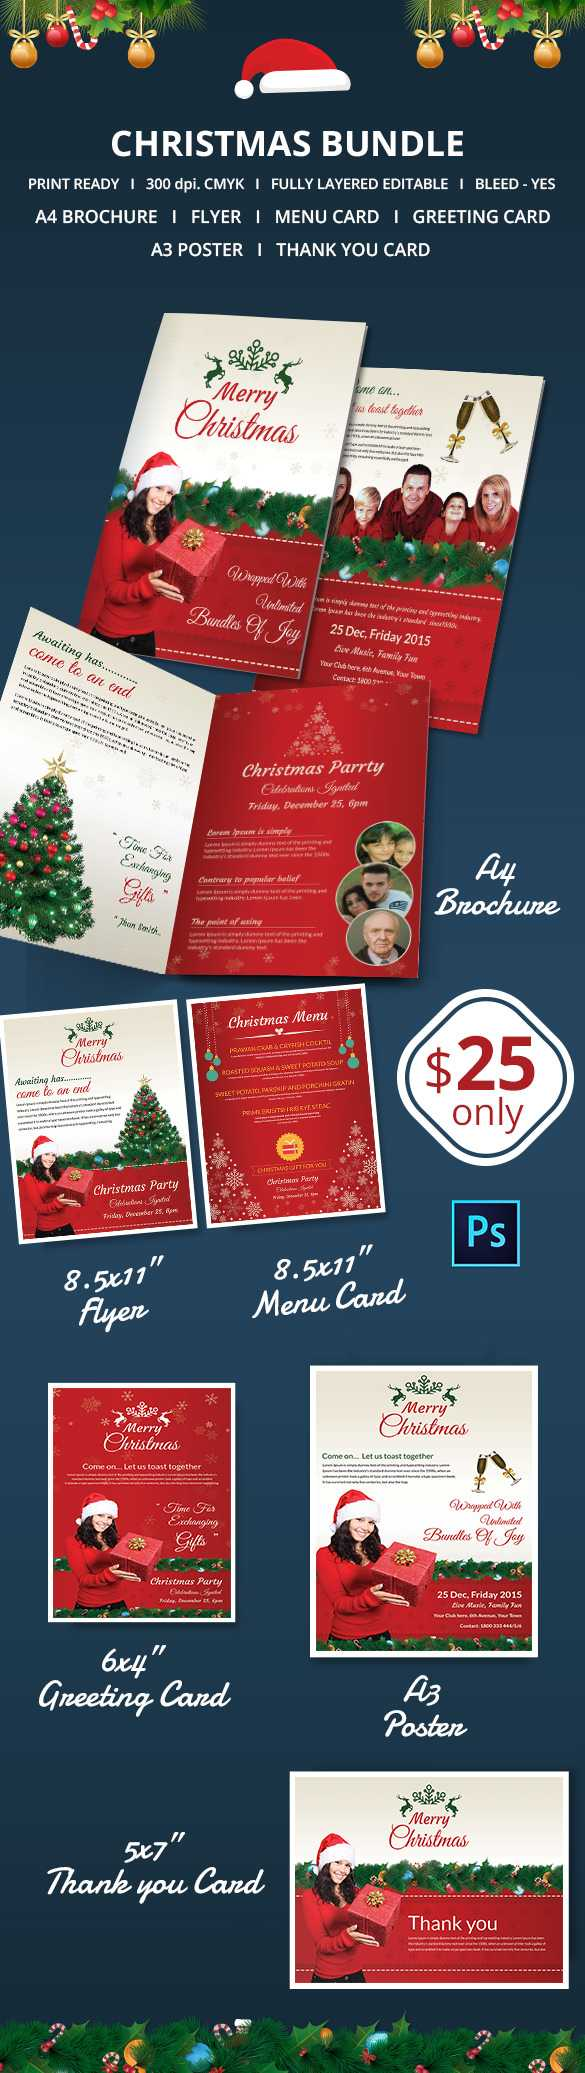 41+ Christmas Brochures Templates - Psd, Word, Publisher Intended For Christmas Brochure Templates Free